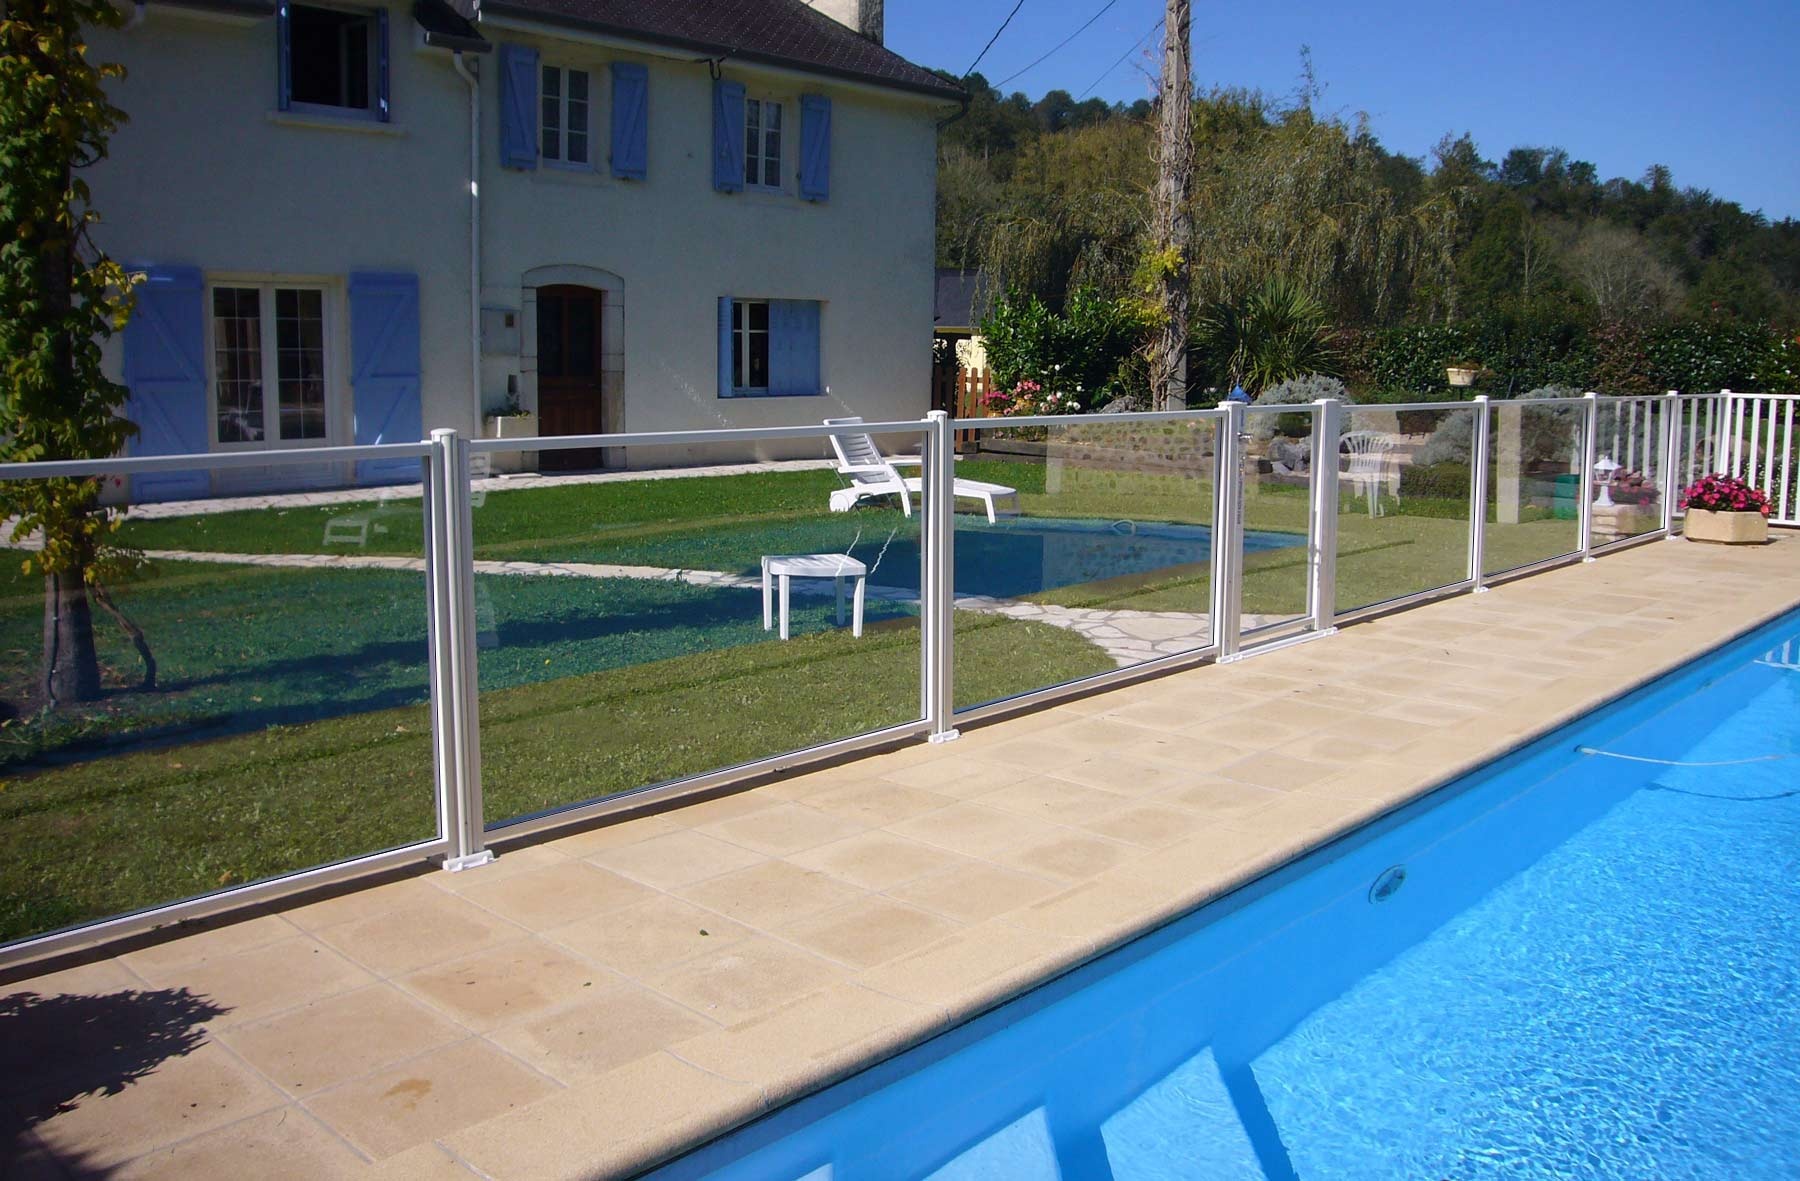 Les barri res en verre de protection d 39 atlantic barriere for Piscine barriere